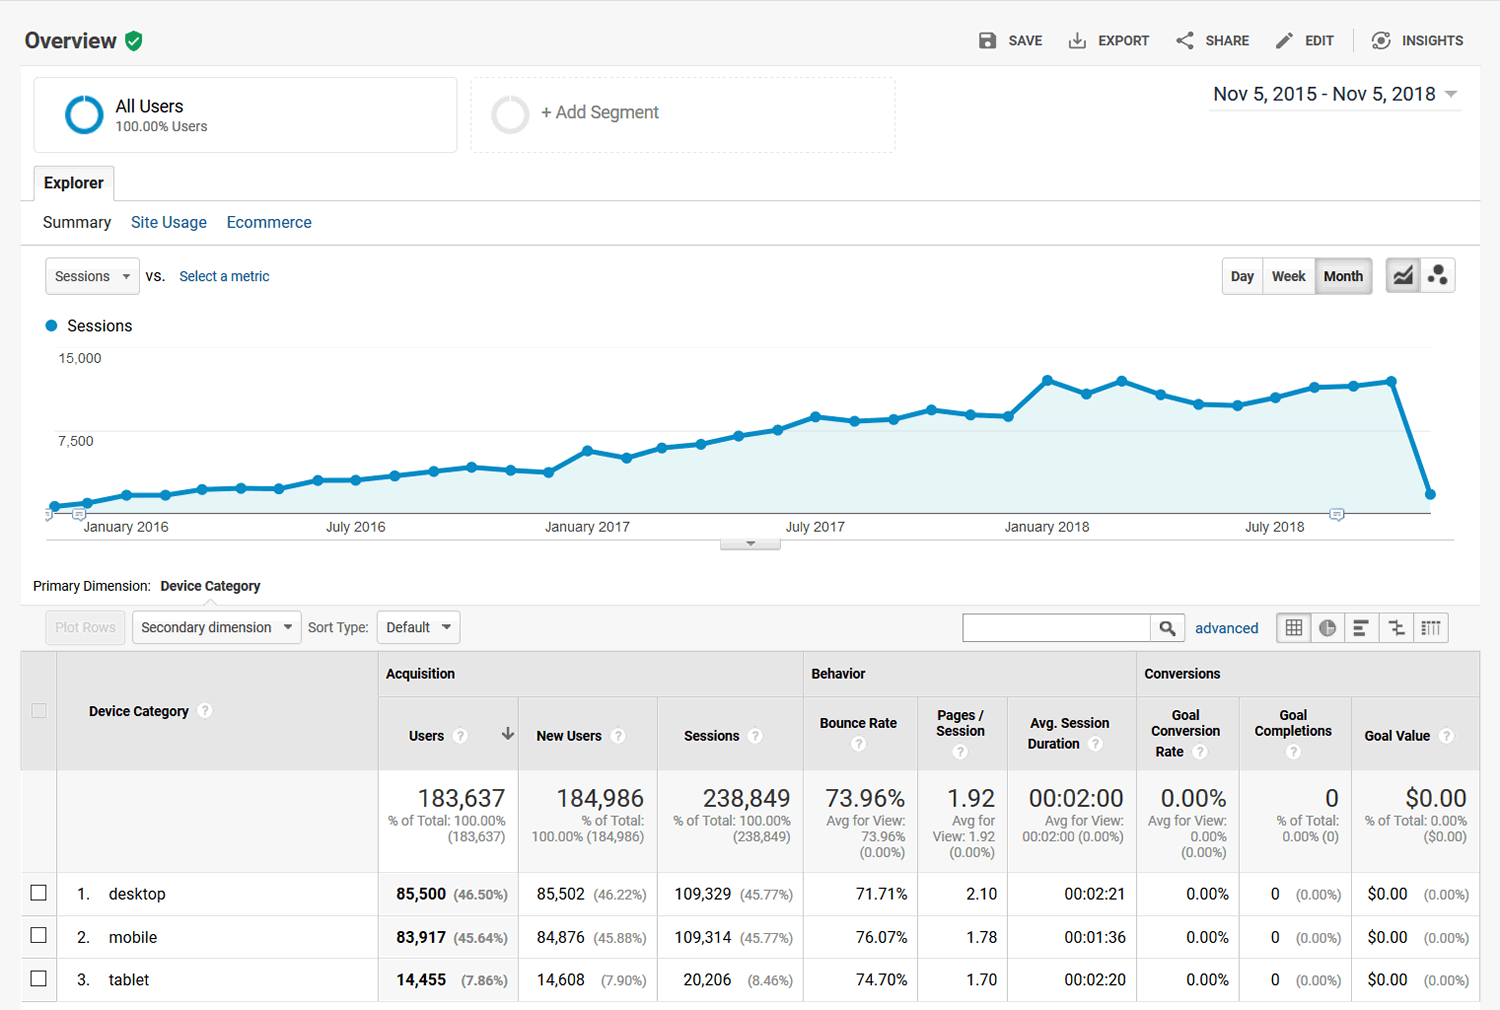 Google Analytics - Device Overview - 2015-11-05 through 2018-11-05